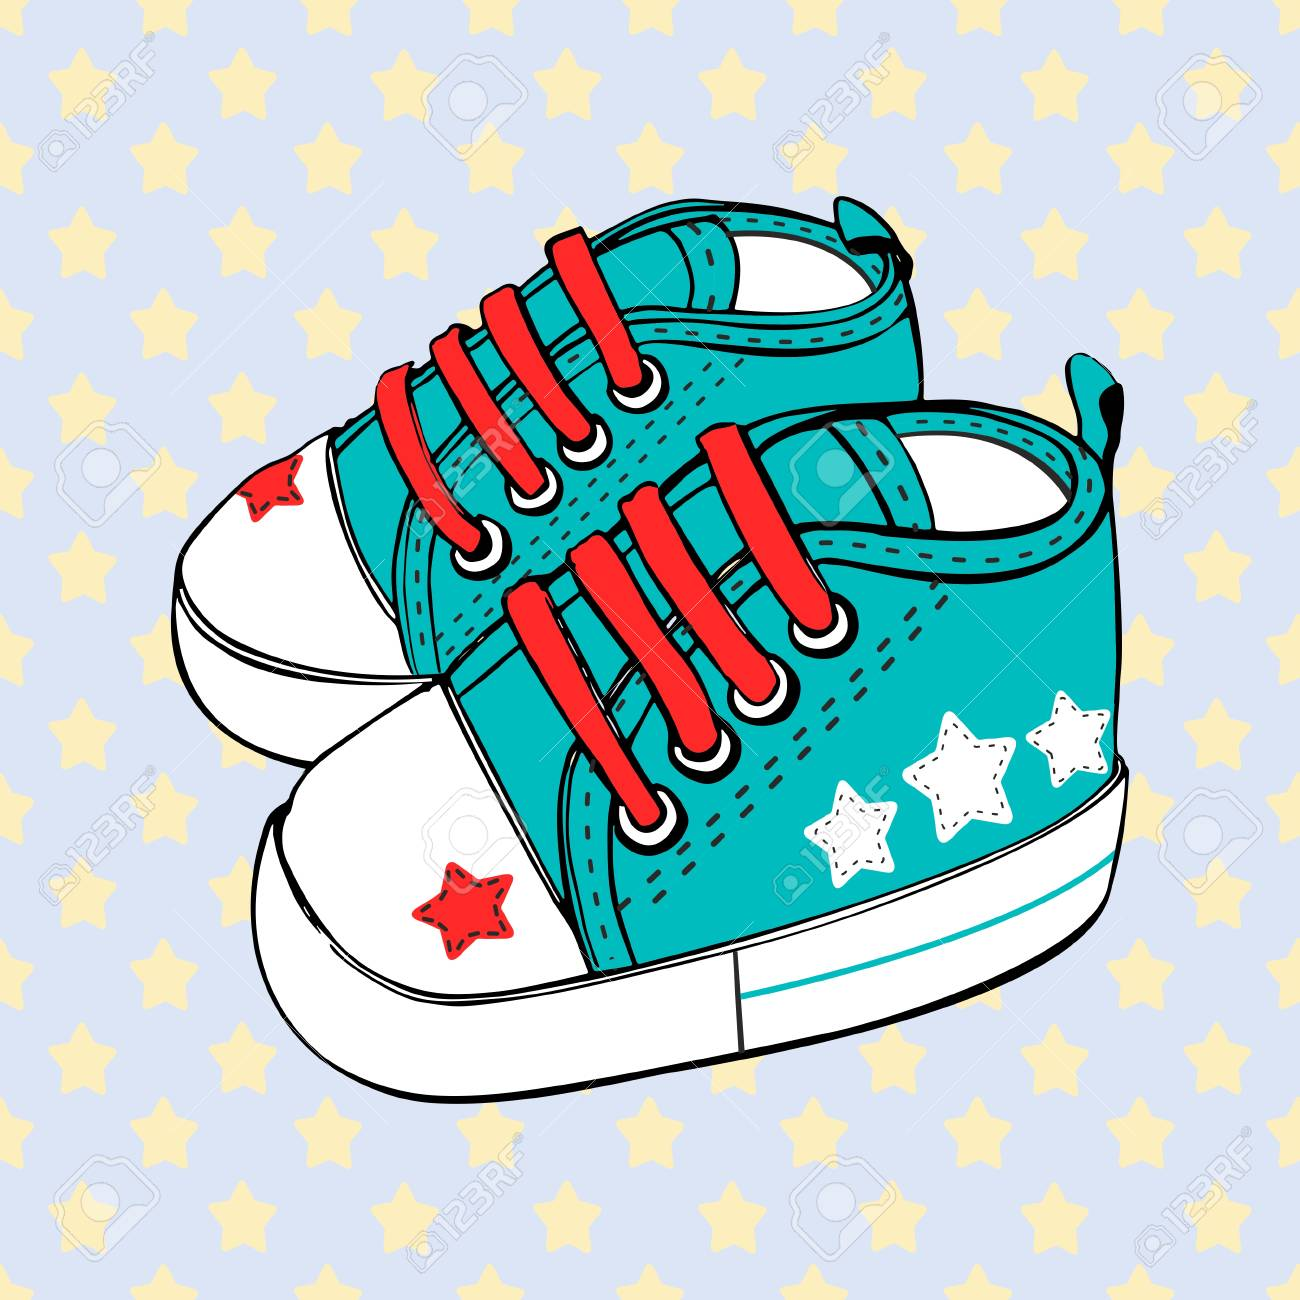 Children S Sport Shoes For Baby Boy Or Baby Girl Vector Illustration Royalty Free Cliparts Vectors And Stock Illustration Image 95770230